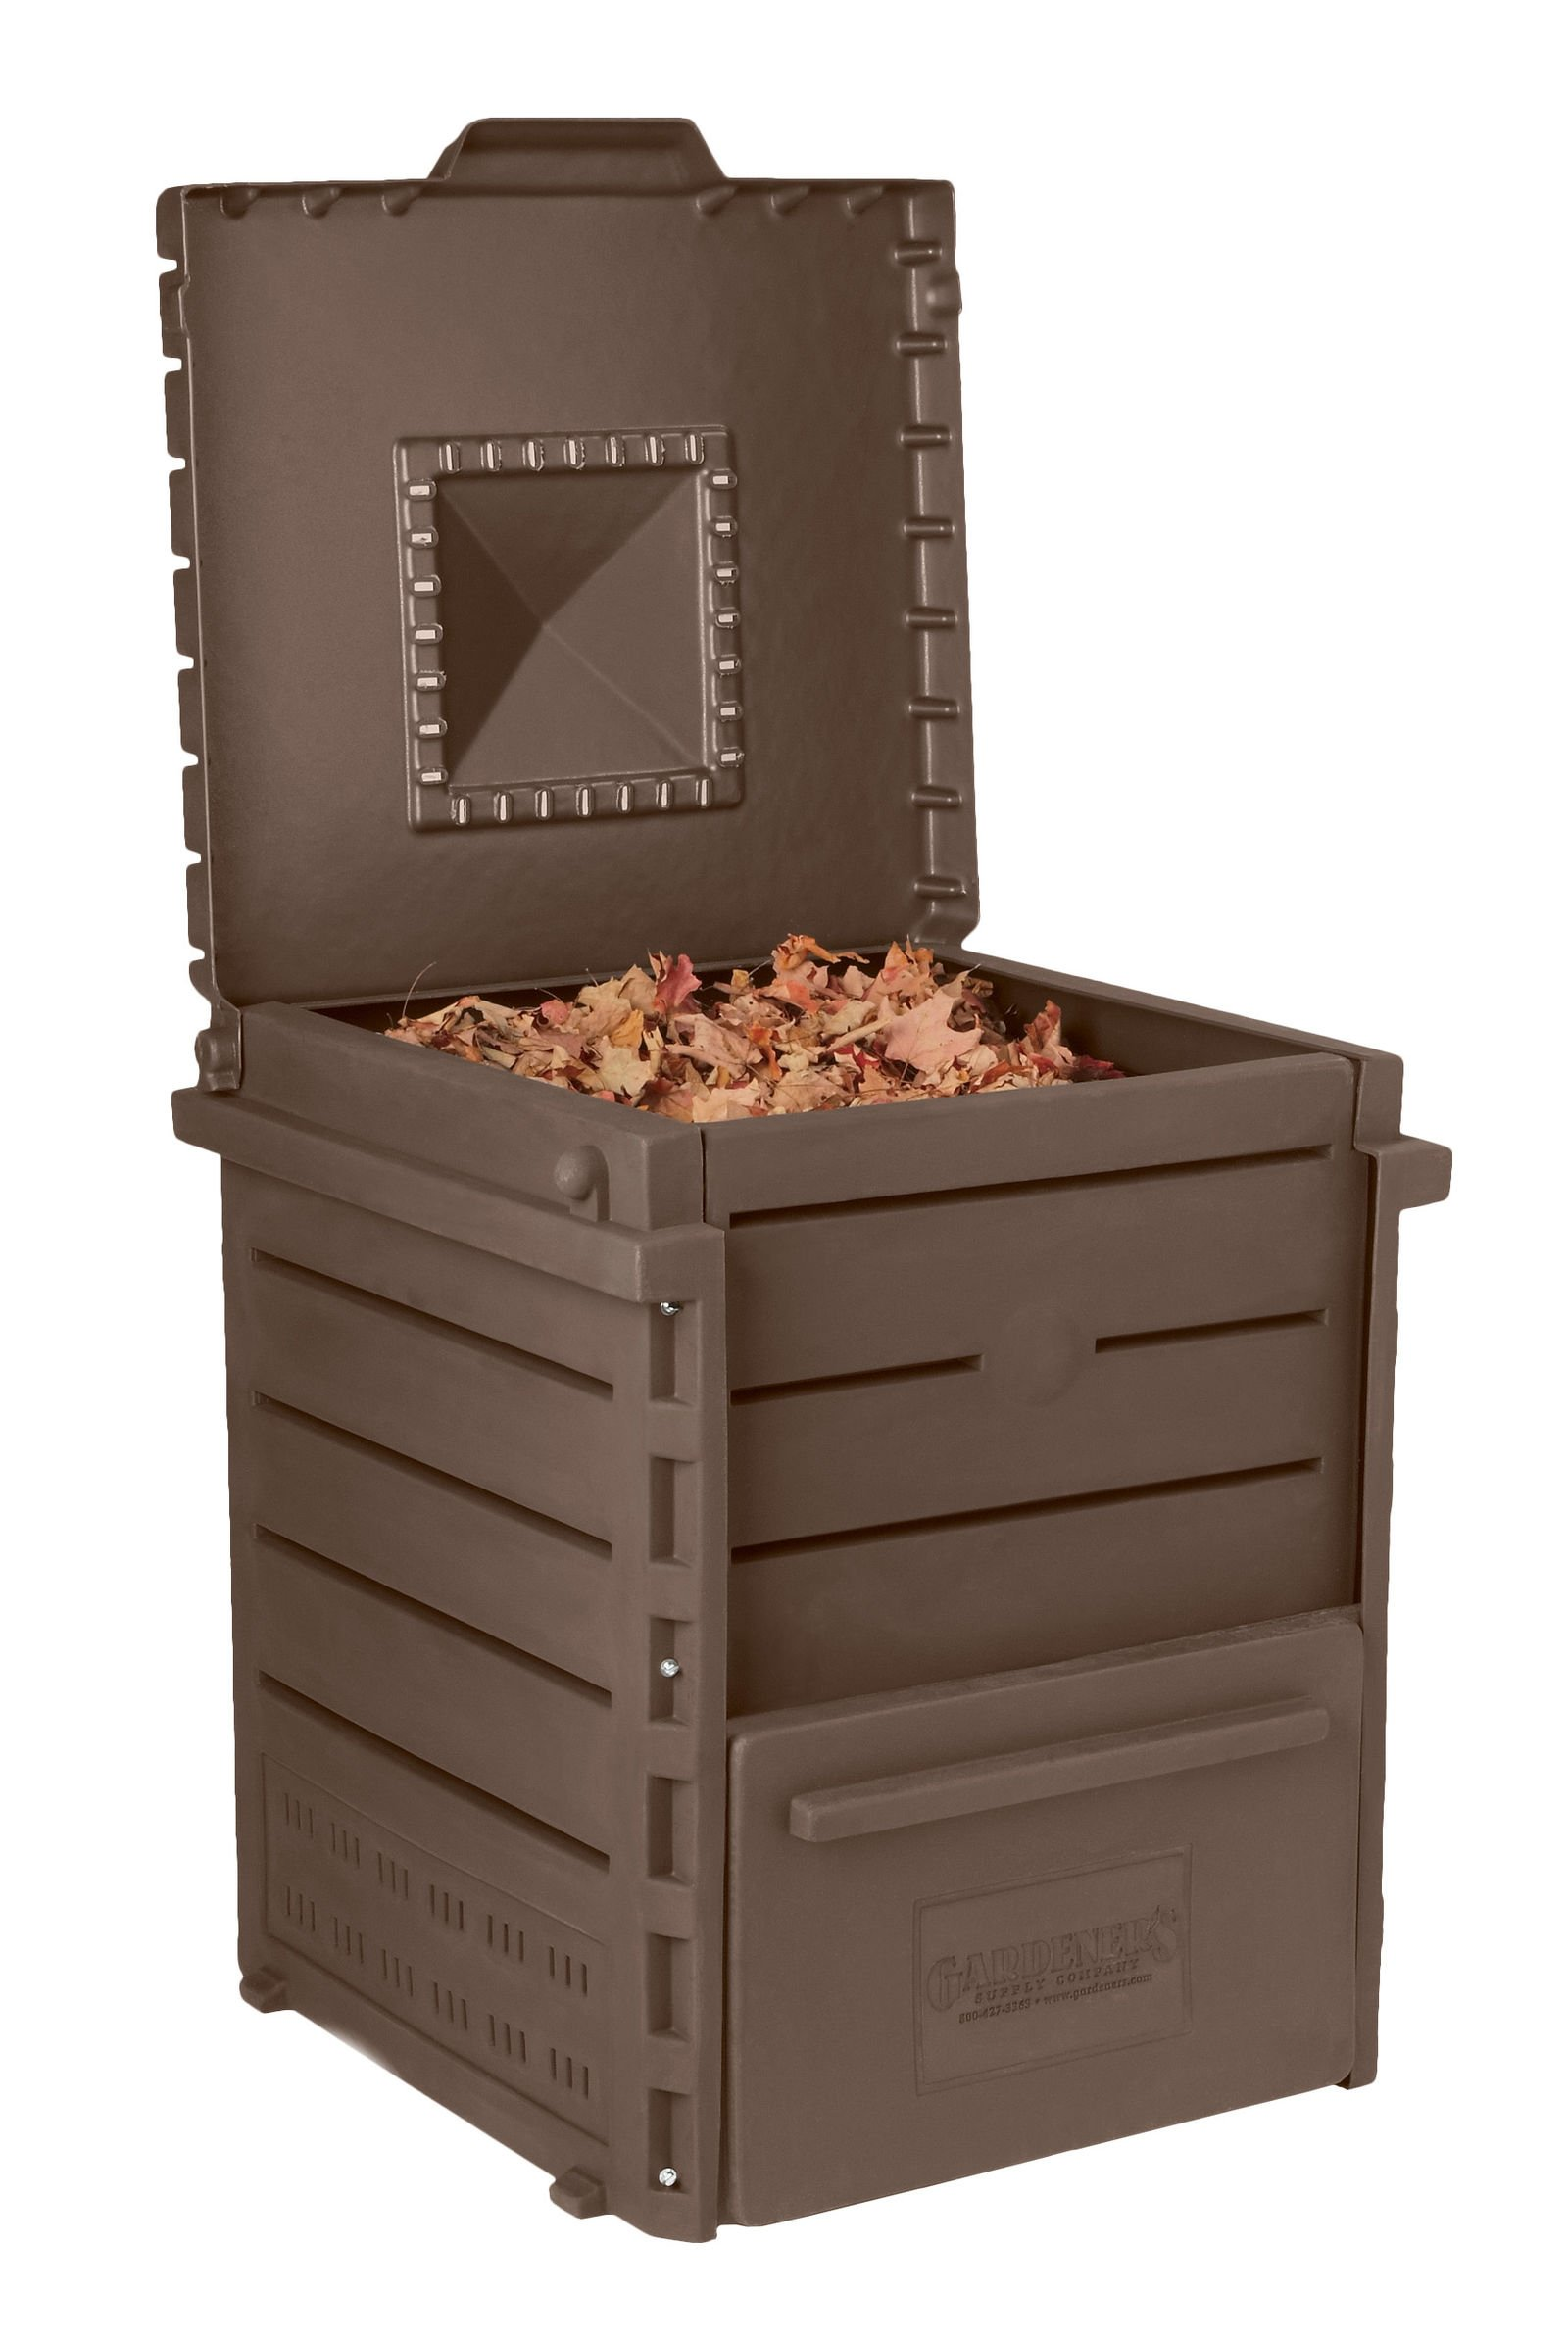 Deluxe Pyramid Composter, Recycled Plastic Composter by Gardener's Supply Company (Image #2)